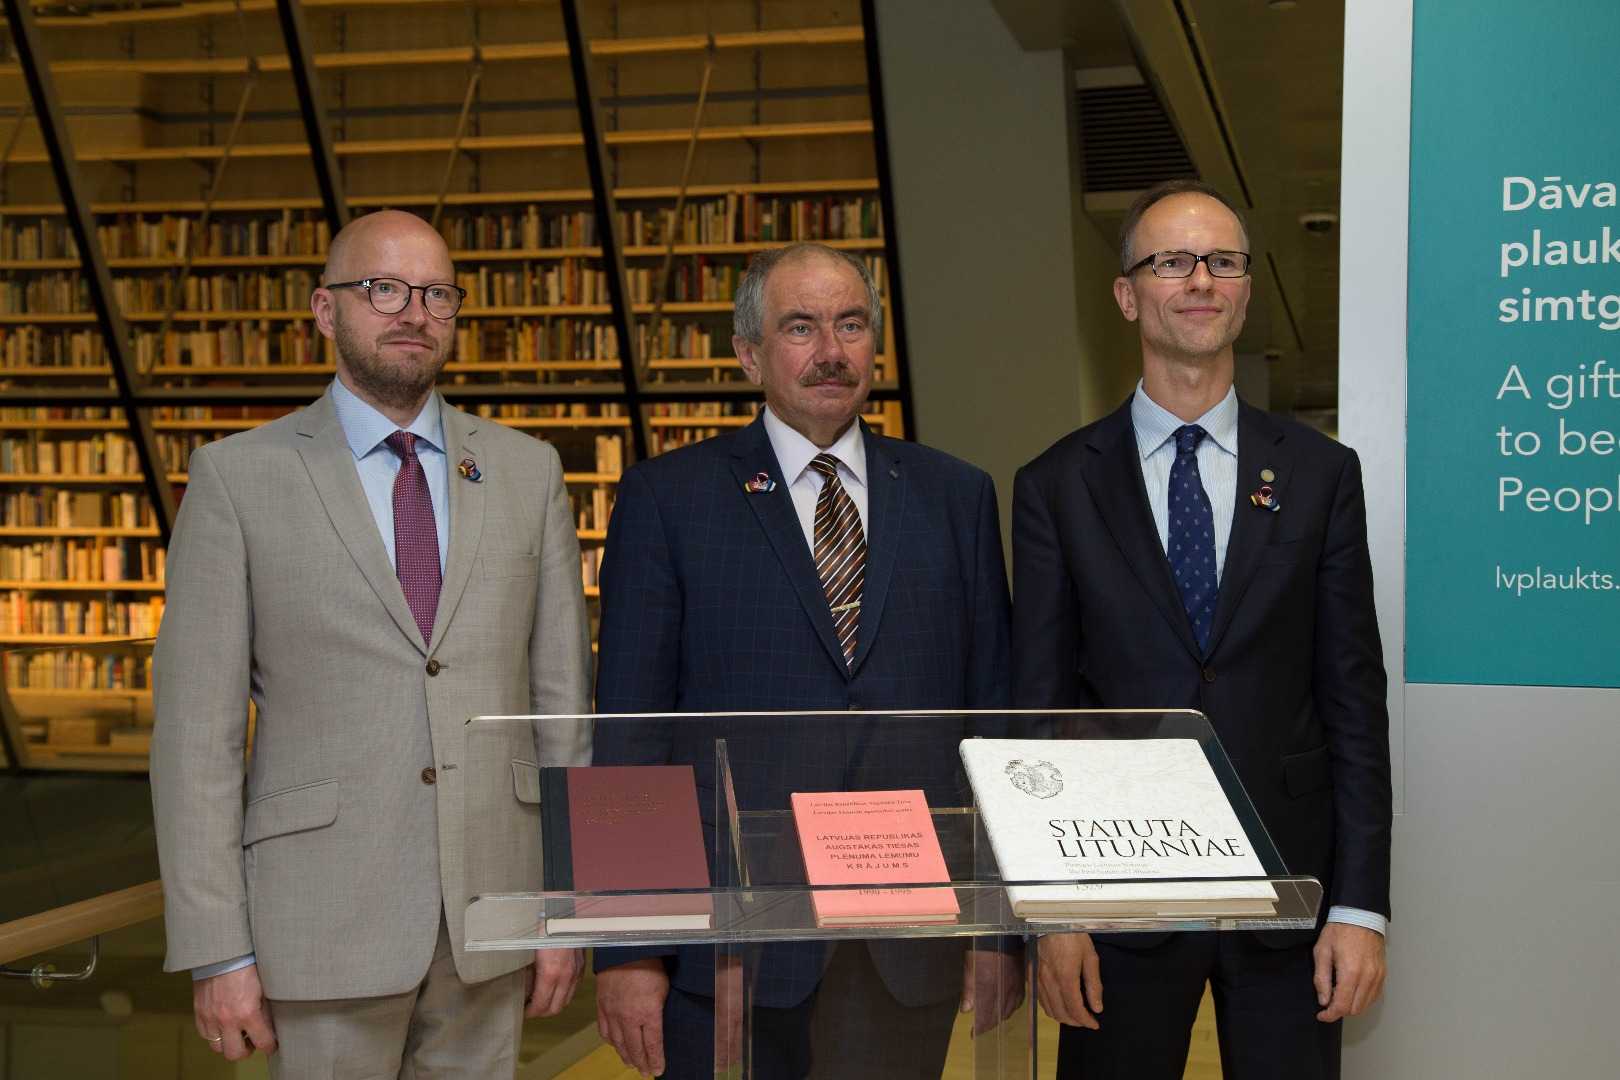 """14.06.2018. Chief Justices of the Supreme Courts of the Baltic States donated books containing special messages to the People's Bookshelf in the National Library of Latvia. Priit Pikamäe, the Chief Justice of the Supreme Court of Estonia, presented the biographical dictionary about the Estonian judges who worked in courts during the interwar period (1918-1940). The gift by Rimvydas Norkus, the President of the Supreme Court of Lithuania, was Lithuanian Statutes – collection of laws of the Grand Duchy of Lithuania of 1529. Ivars Bickovics, the Chief Justice of the Supreme Court of Latvia, left in the People's Bookshelf the """"Plenary Session decisions of the Supreme Court 1990-1995""""."""